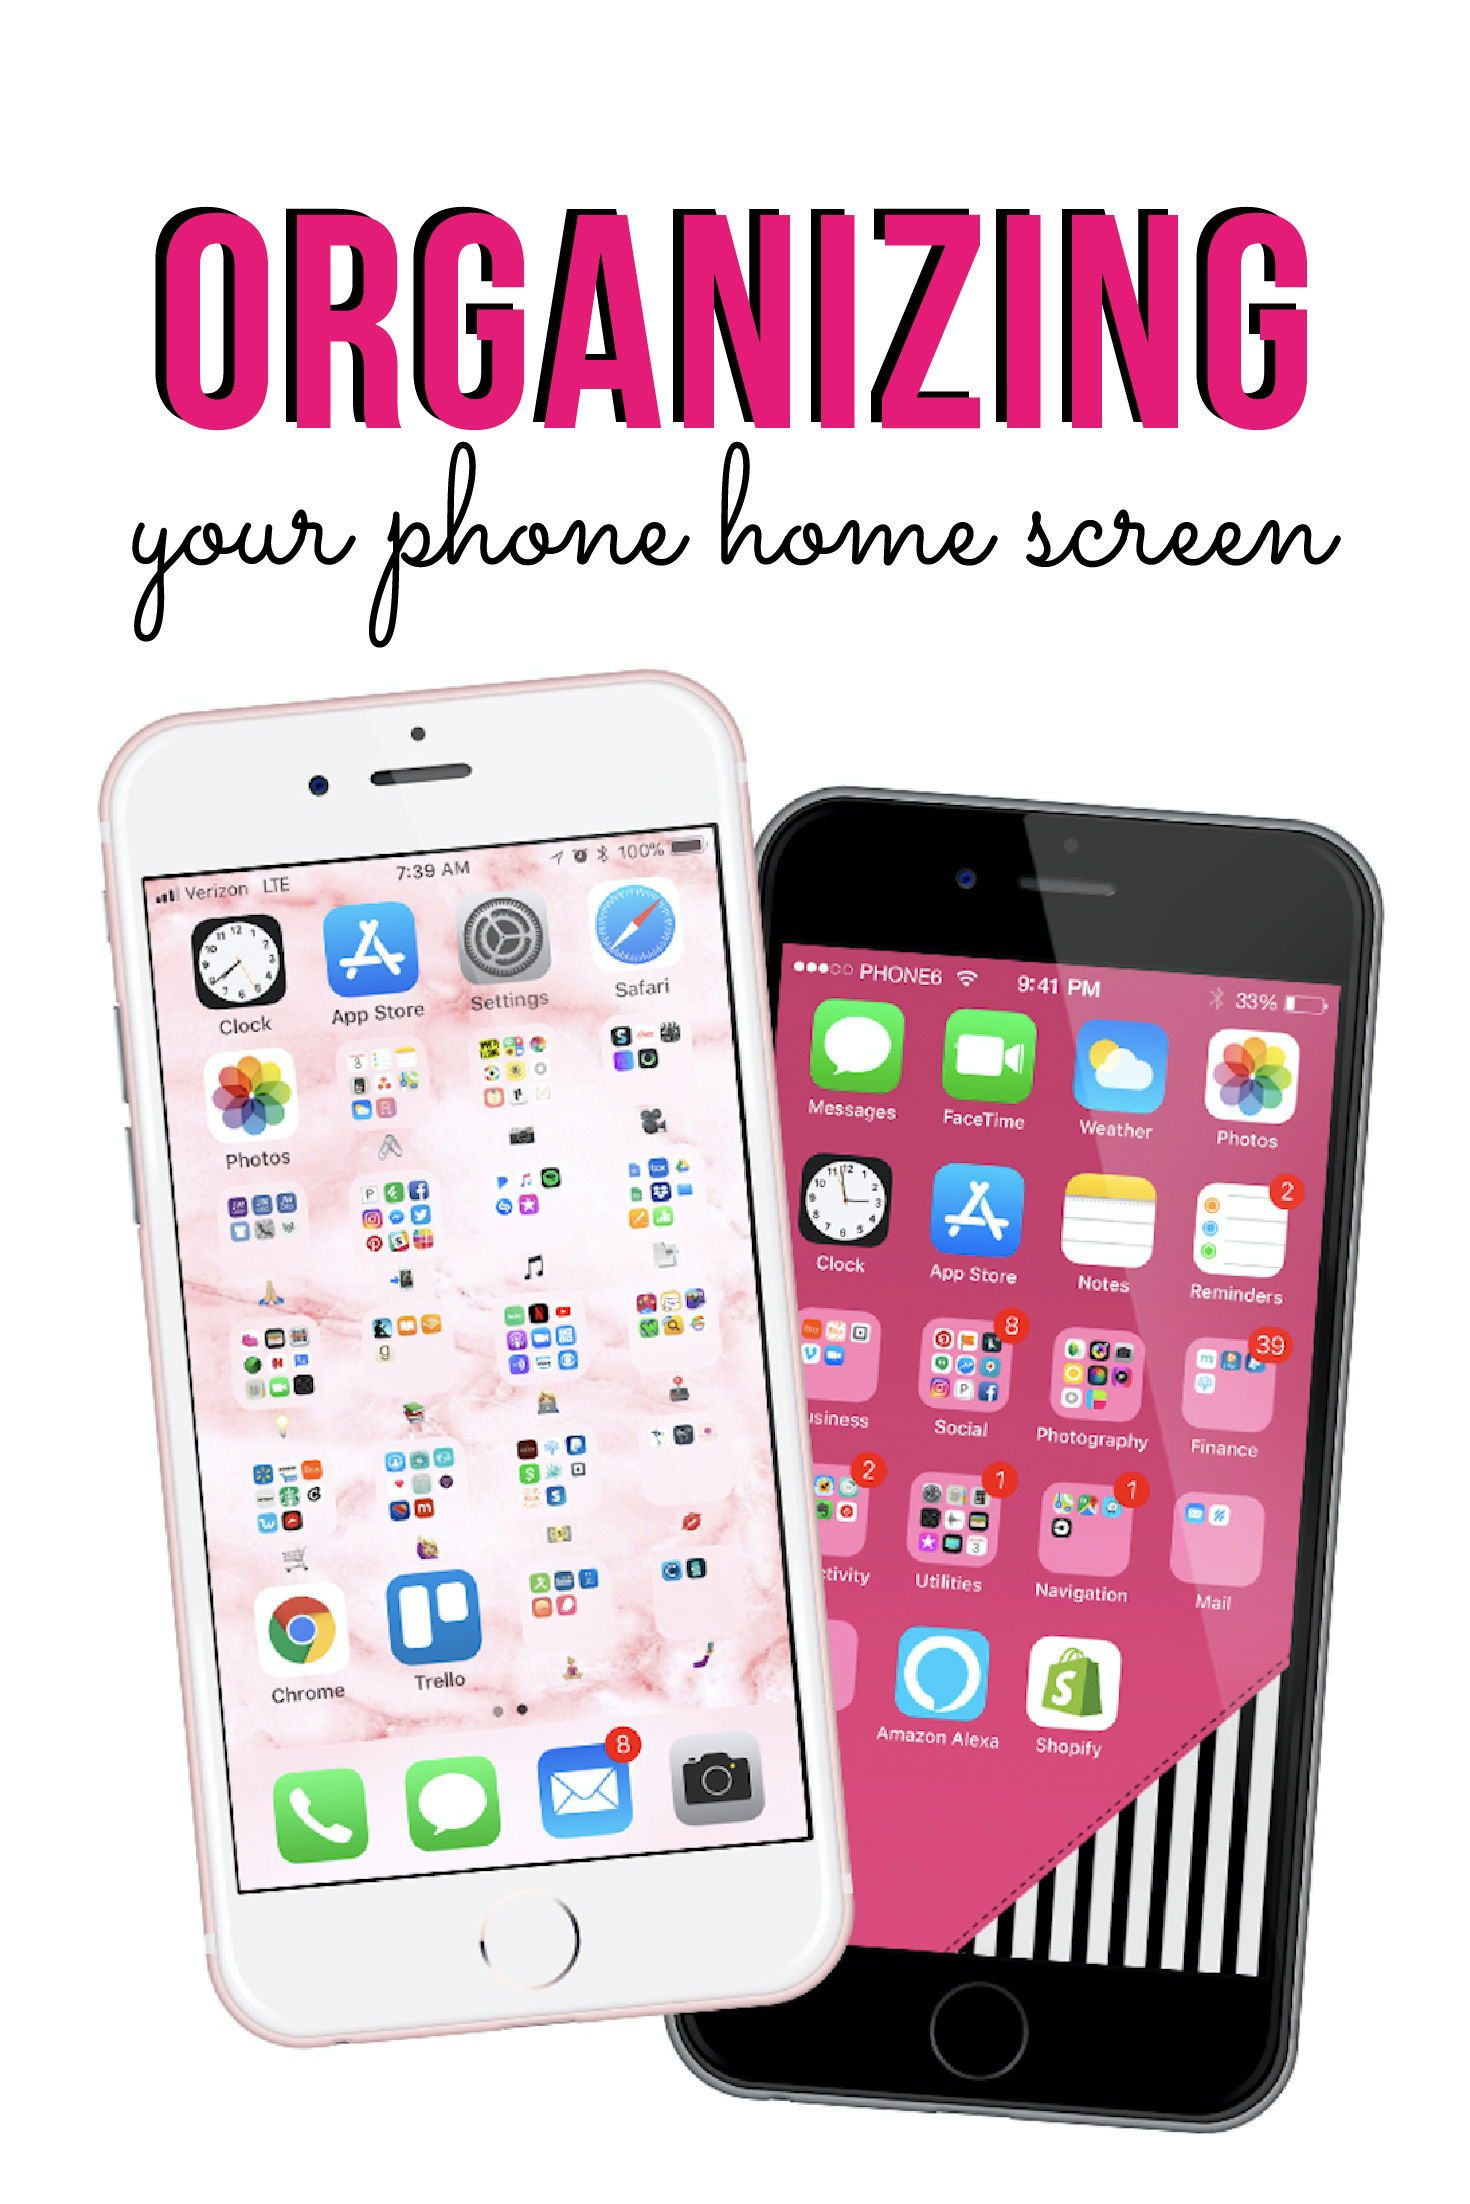 How To Organize Your Phone In 2020 Organization Apps Organize